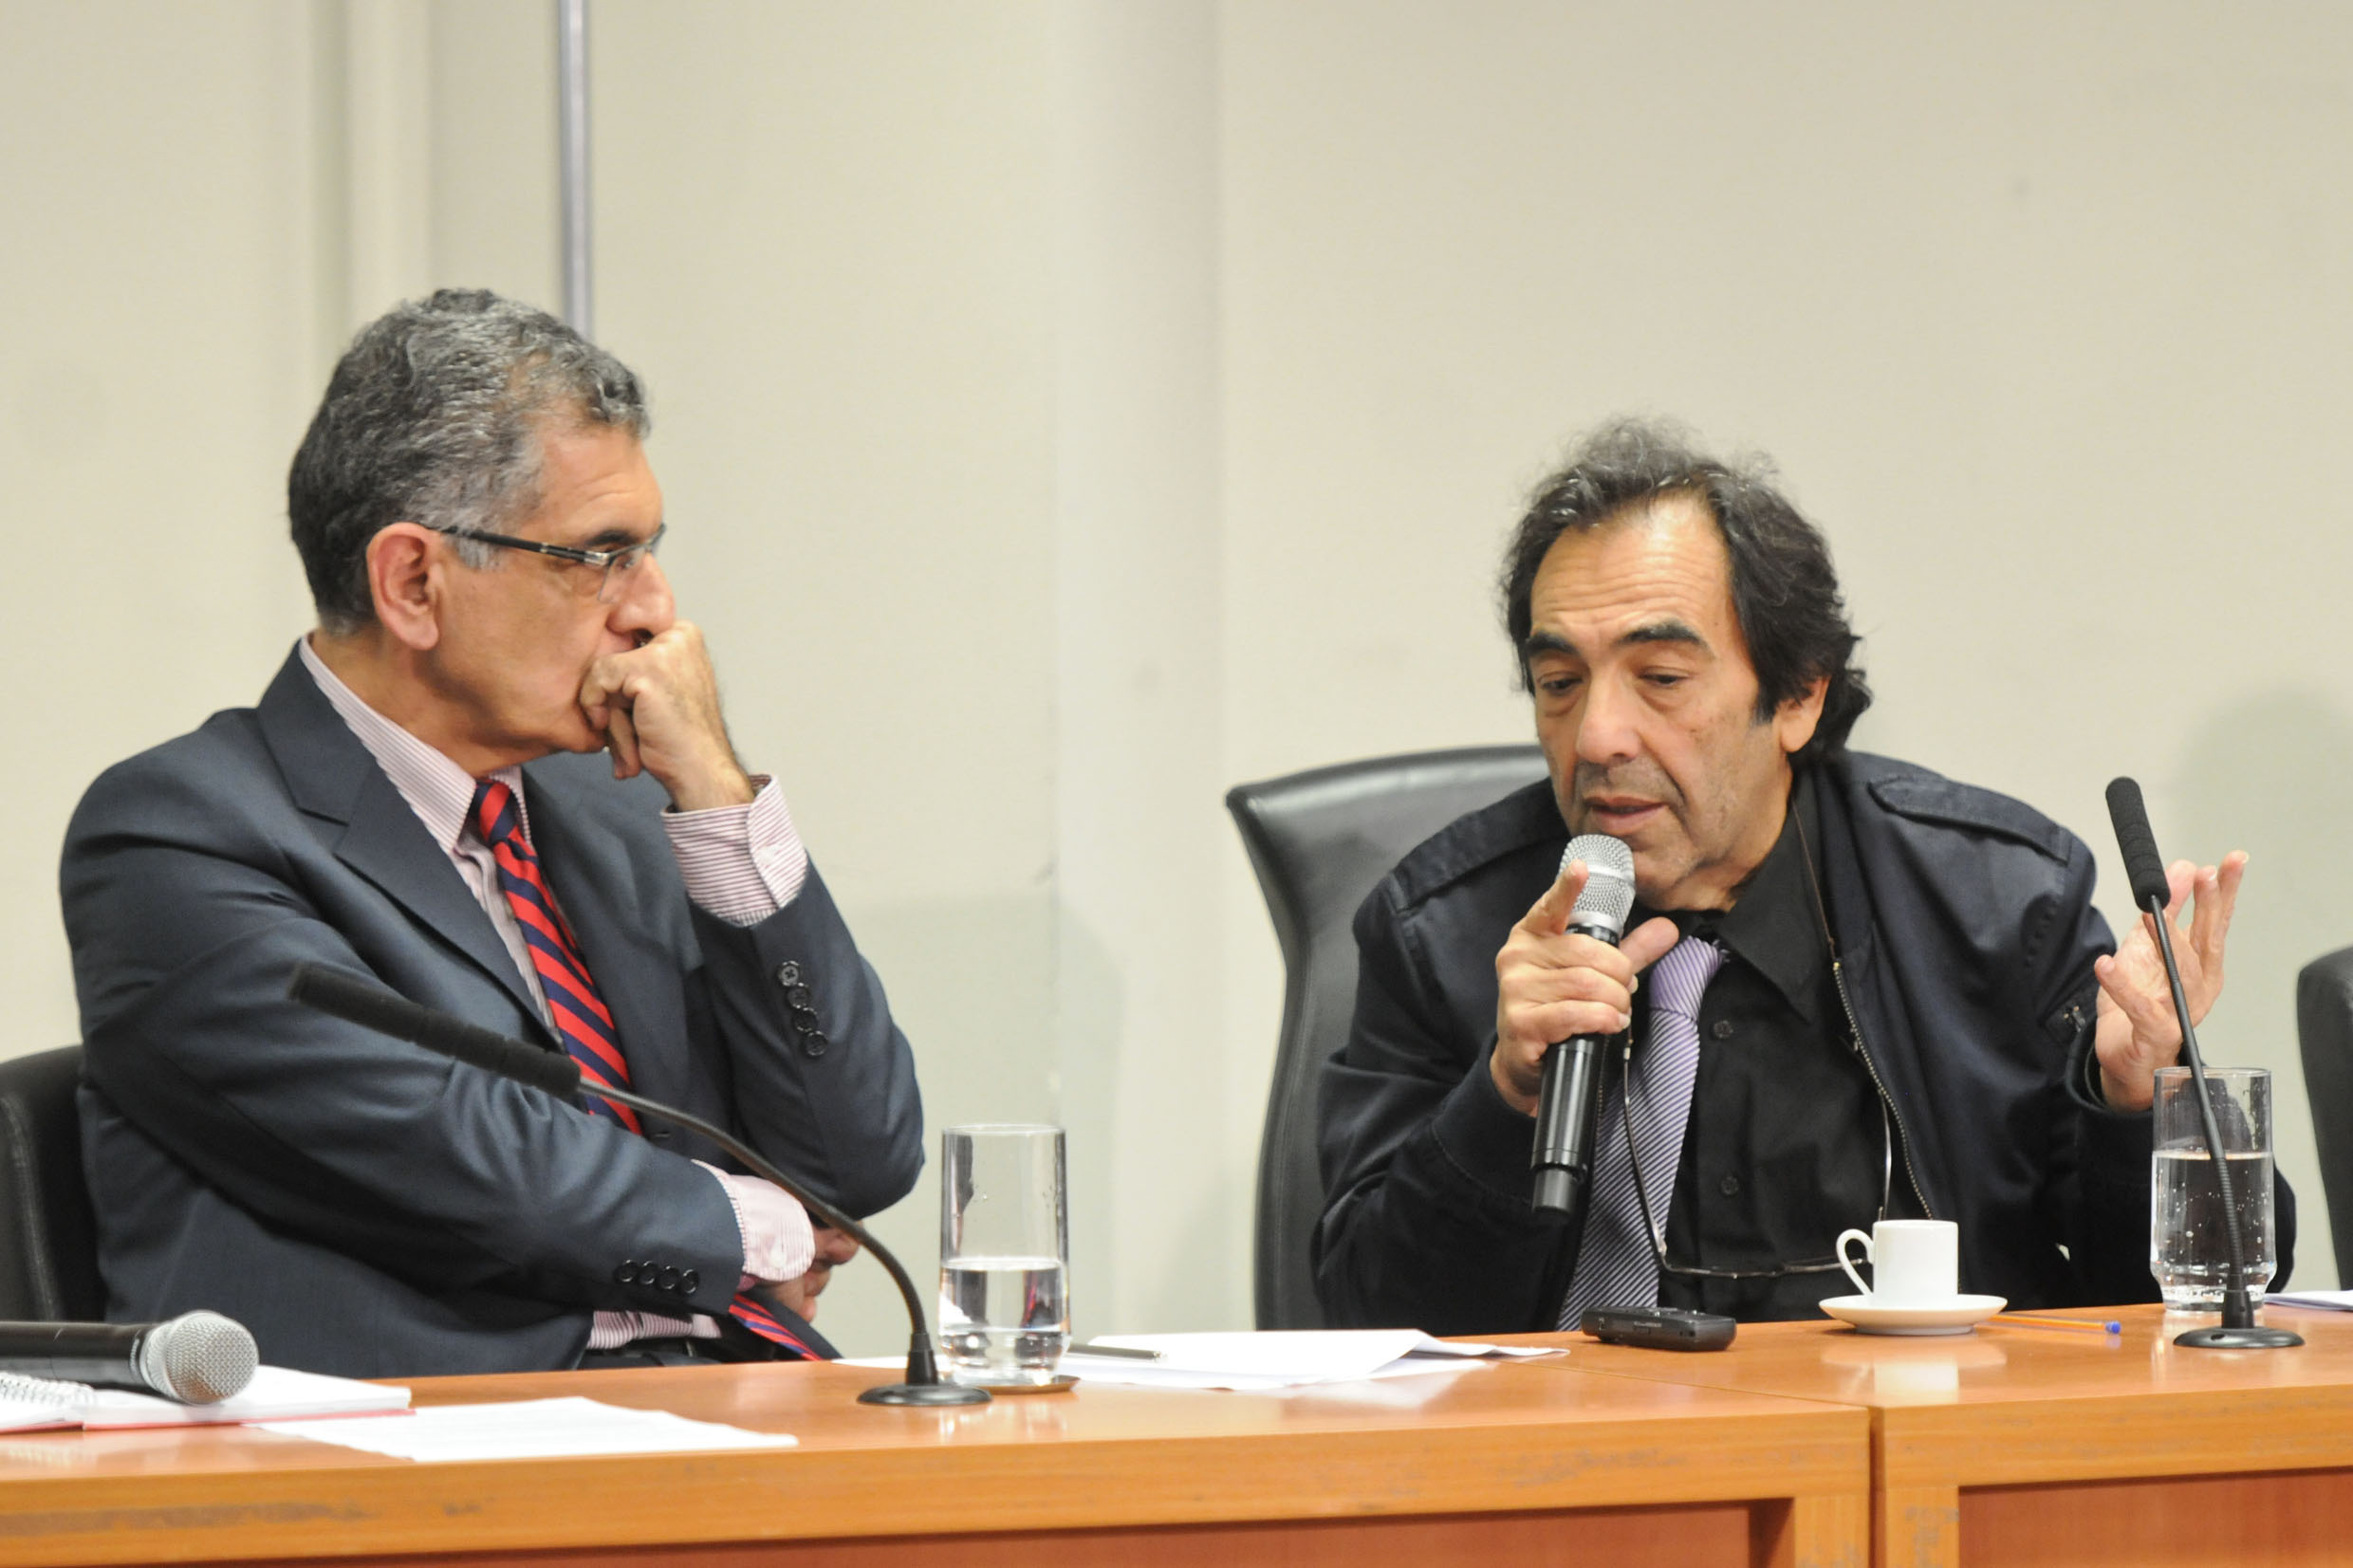 Vahan Agopyan e Adriano Diogo <a style='float:right' href='https://www3.al.sp.gov.br/repositorio/noticia/N-04-2014/fg161099.jpg' target=_blank><img src='/_img/material-file-download-white.png' width='14px' alt='Clique para baixar a imagem'></a>